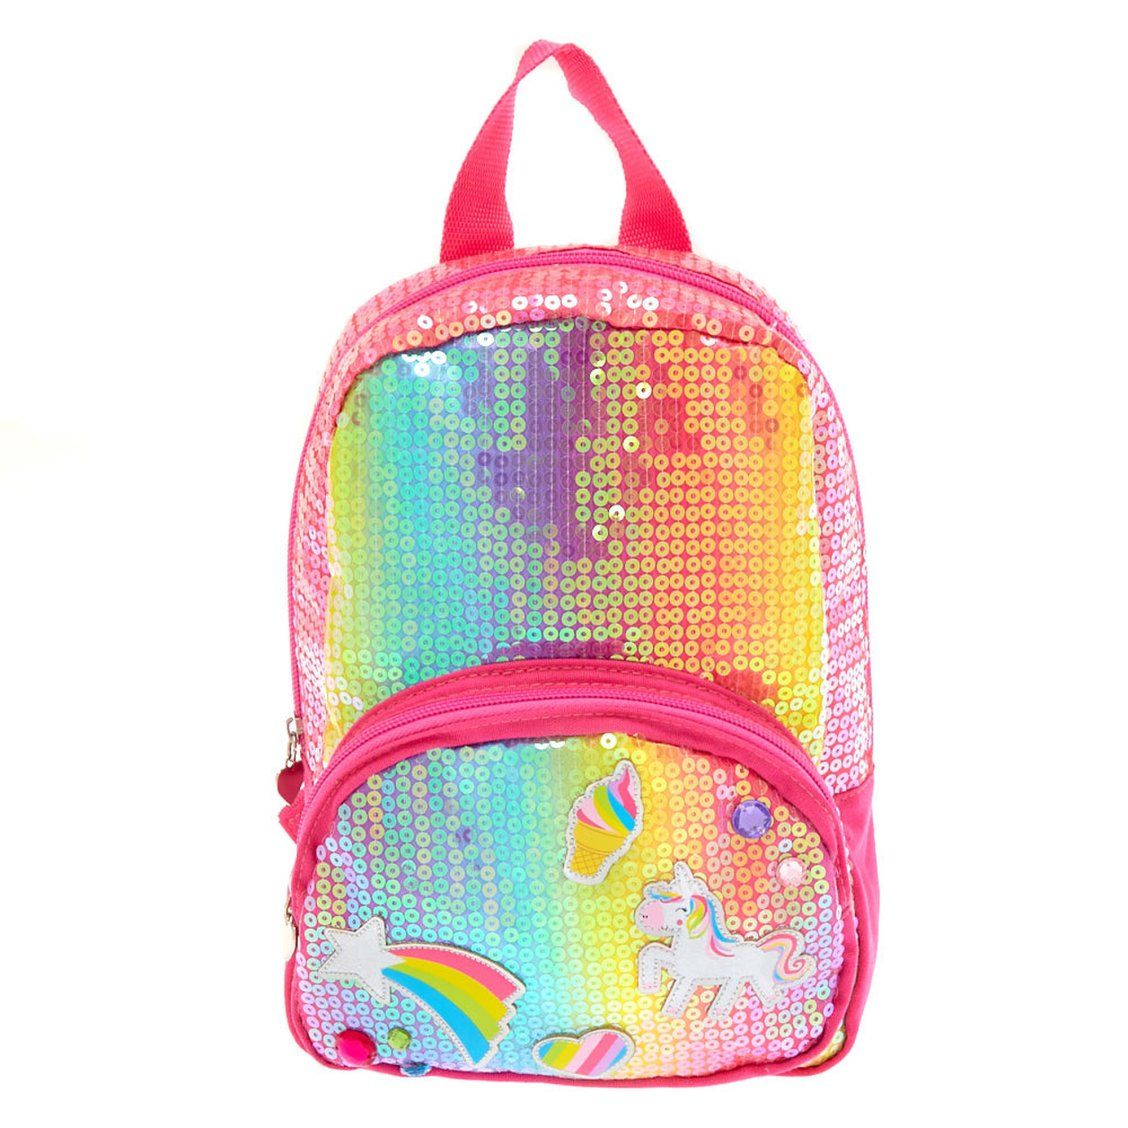 Kids Rainbow Unicorn Sequin Backpack   Rainbows and sequins are always in!  The added rainbow patches and faux crystals add a cute extra flare to this  ... 2d5ca76357